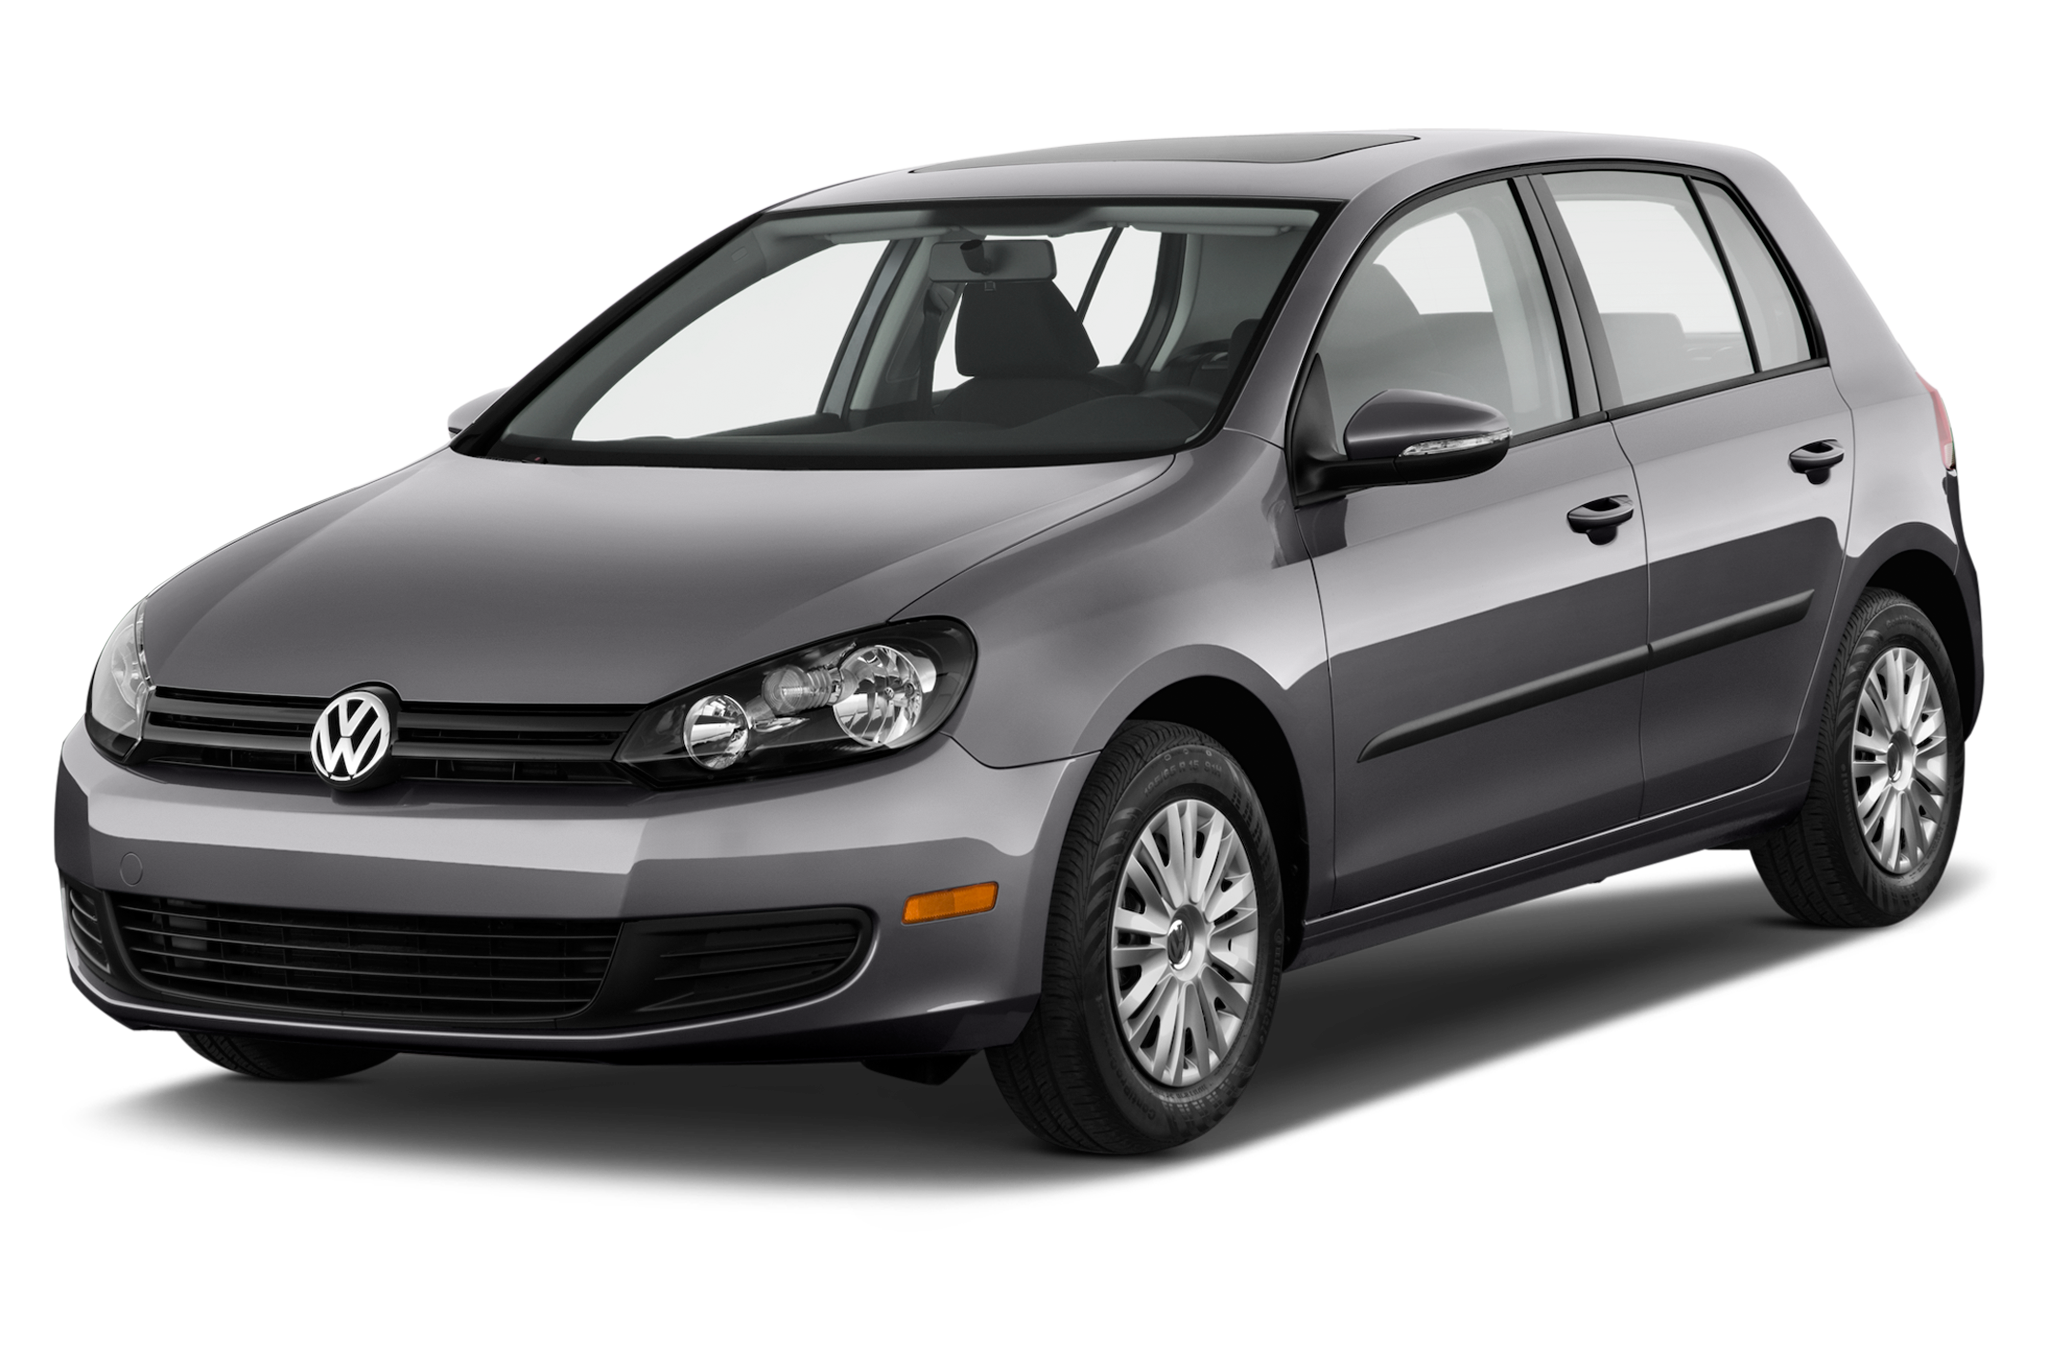 2012 Volkswagen Golf #19